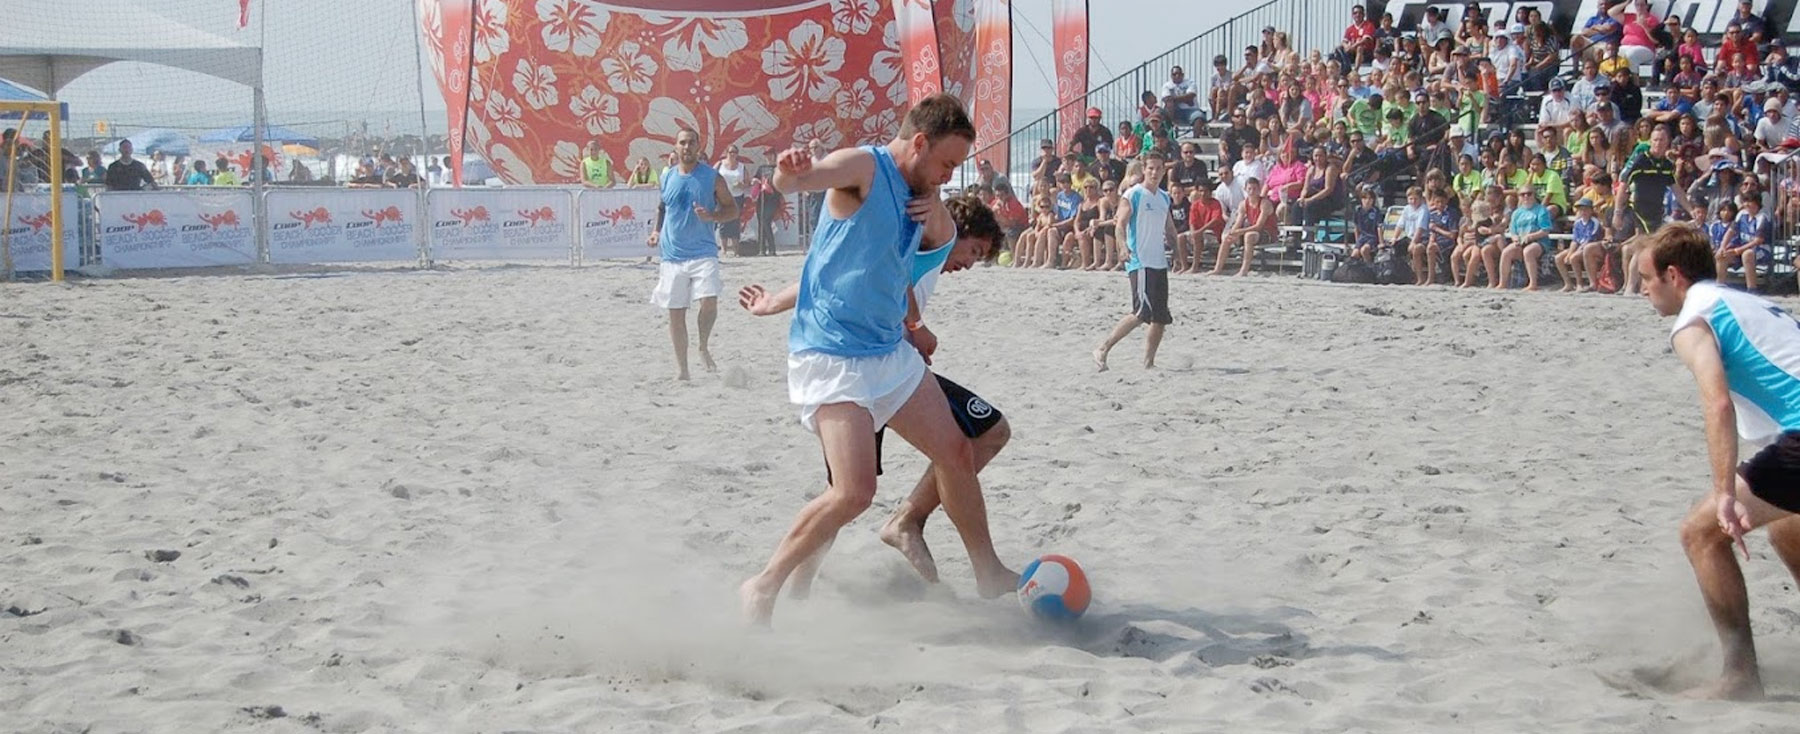 Southern California Beach Soccer Championships